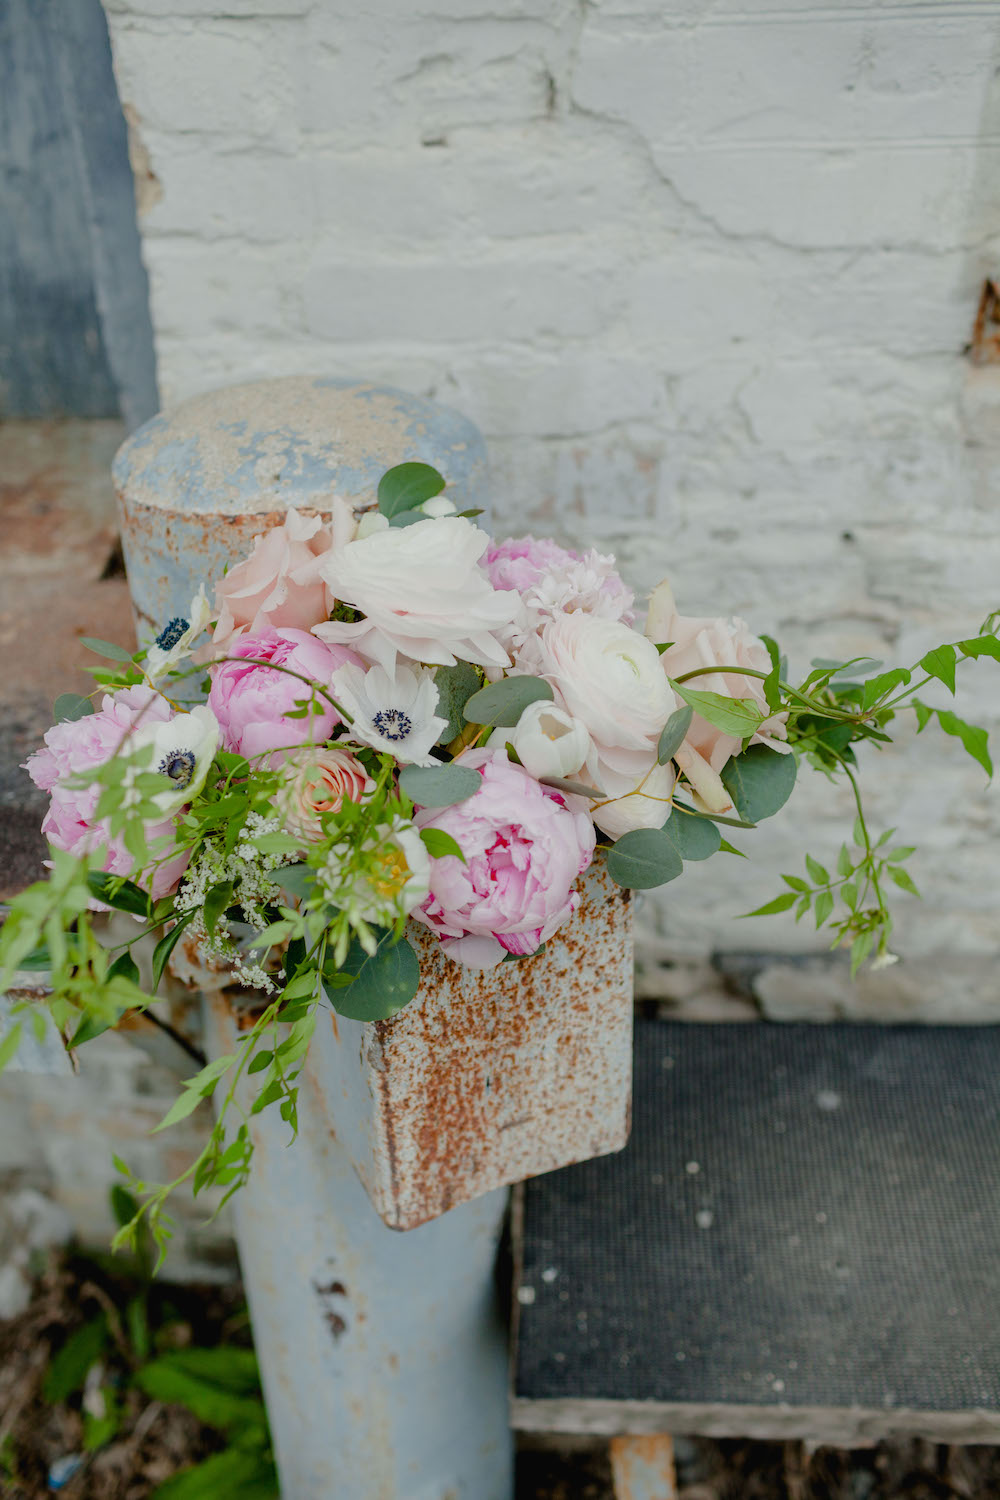 Garden-inspired-wedding-flowers--stone-house-creative.jpg